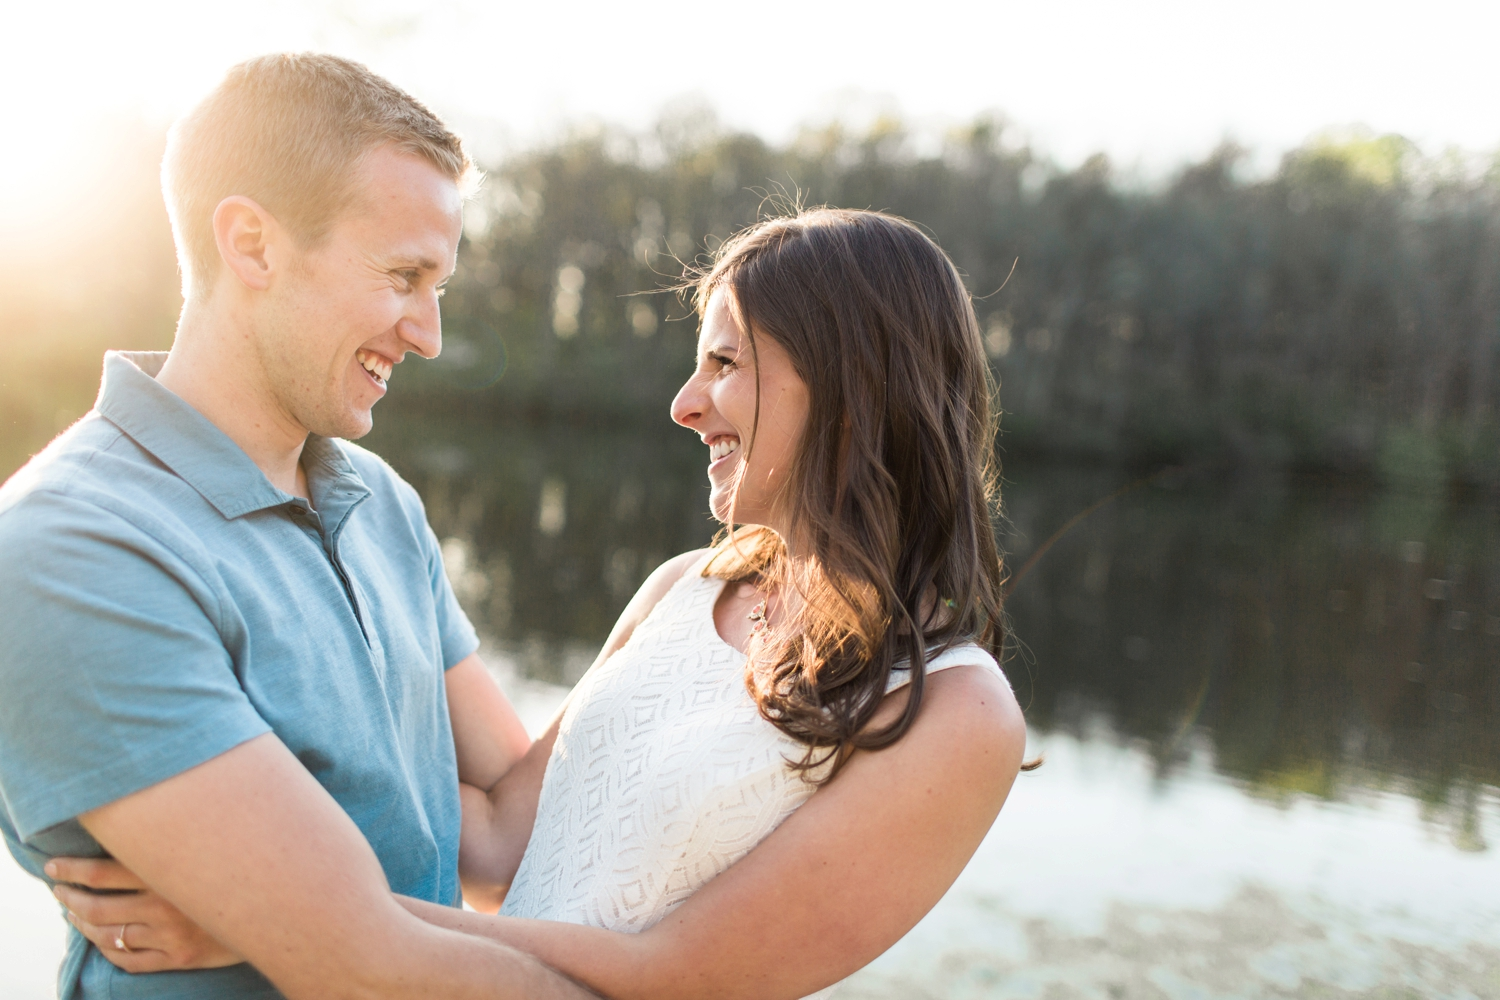 indianapolis_indiana_wedding_photographer_eagle_creek_engagement_chloe_luka_photography_6379.jpg